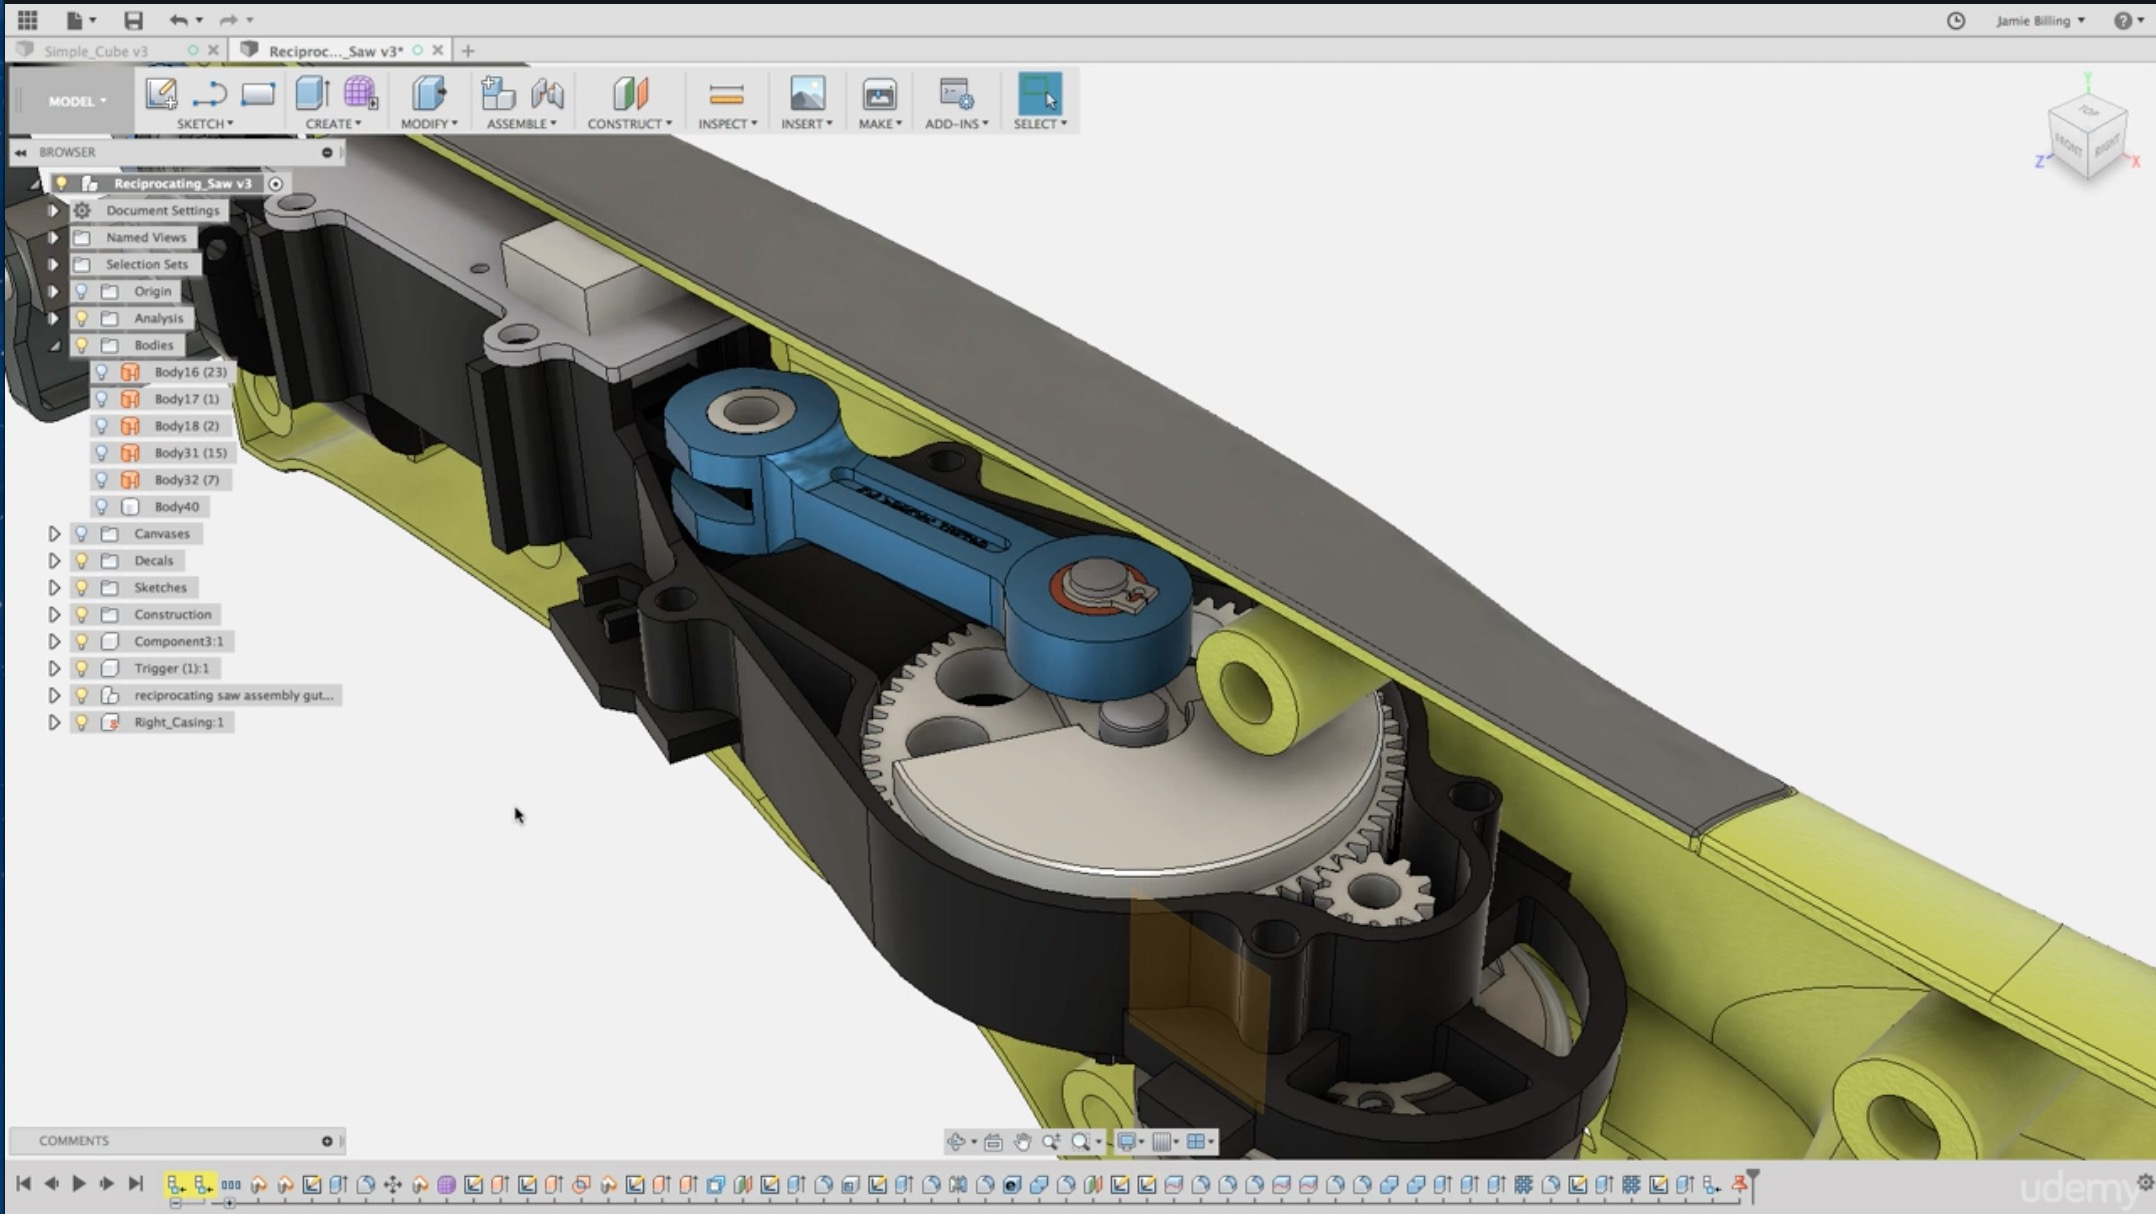 Autodesk Fusion 360 Free Download 2019 Fusion 360 Free Download Is